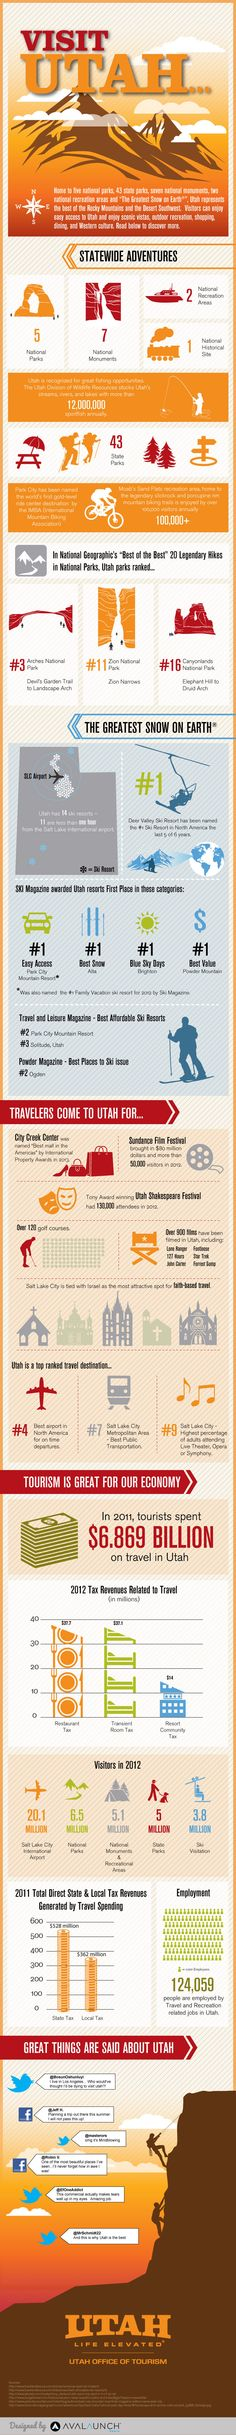 Why Travelers Visit Utah | Official Utah Office of Tourism